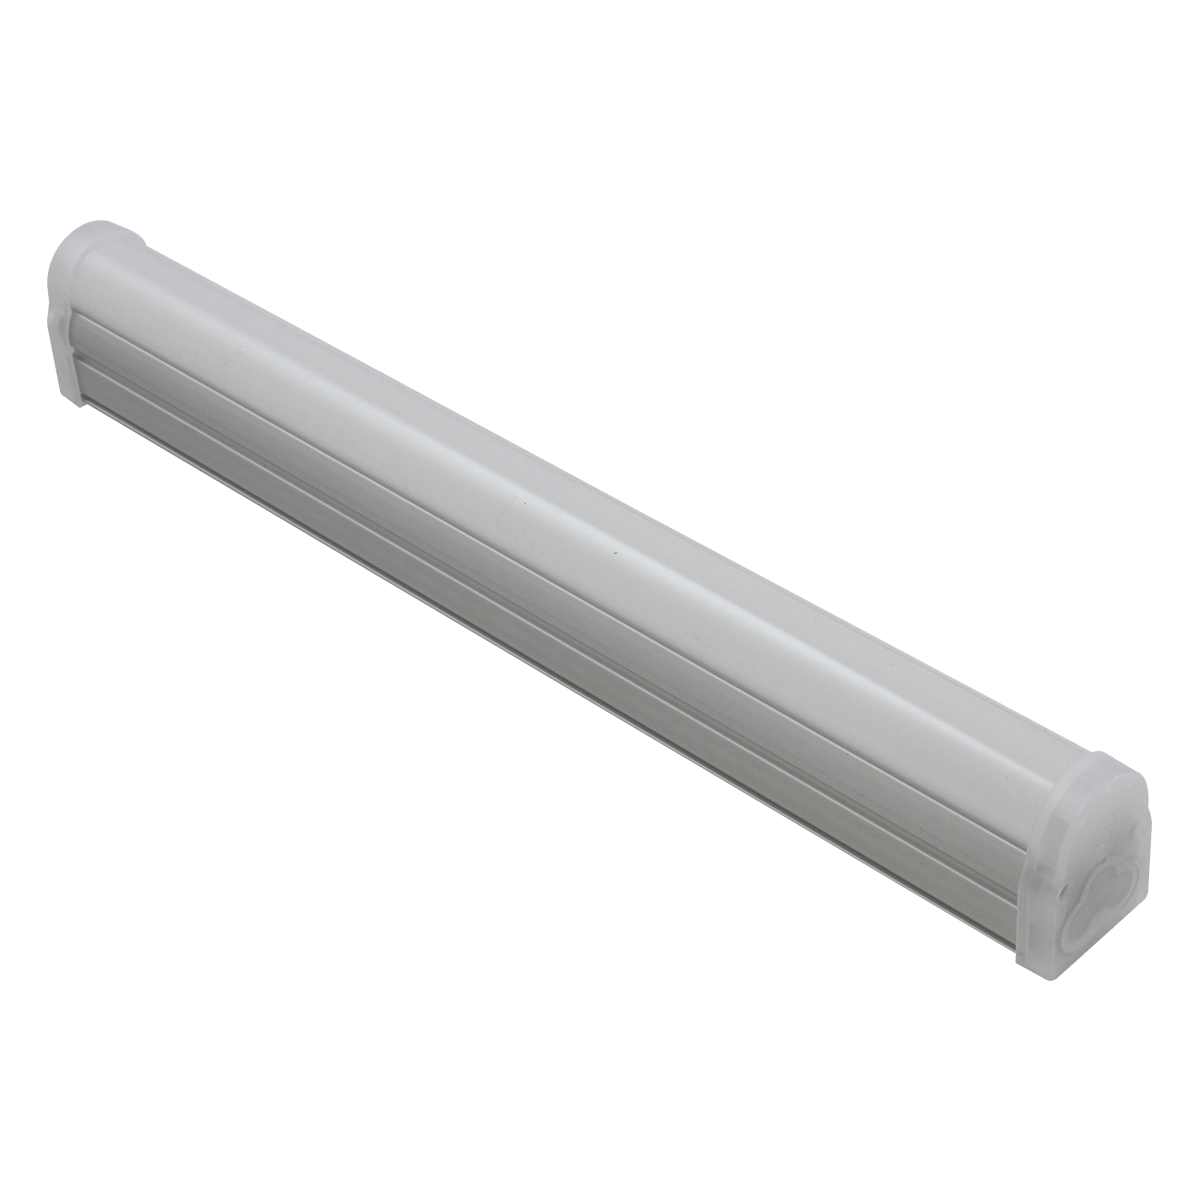 Led Linear Strips Premise Led Lighting Manufacturer